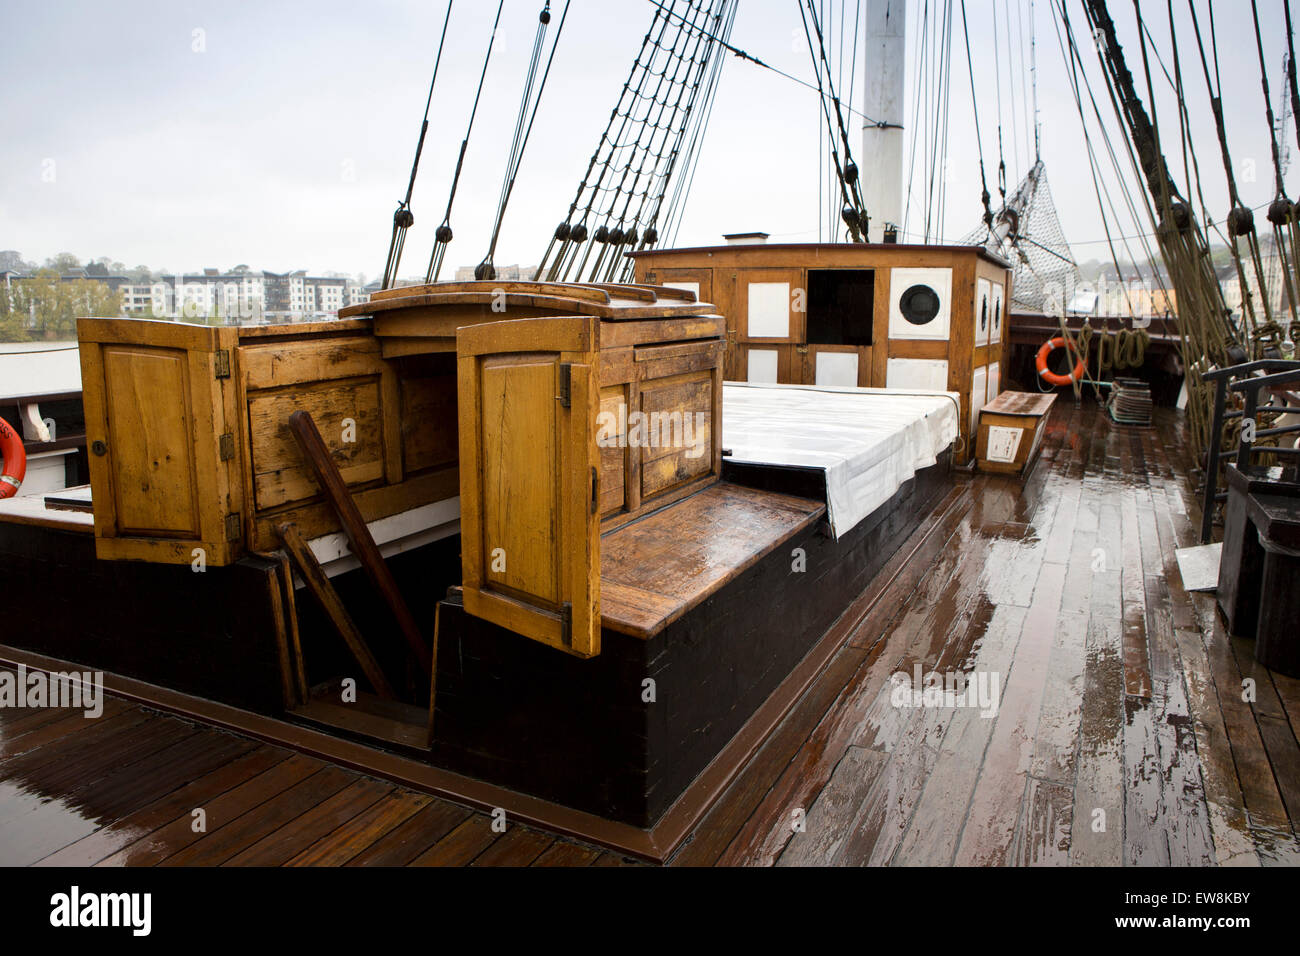 Ireland, Co Wexford, New Ross, replica 1845 emigrant ship Dunbrody deck and galley - Stock Image